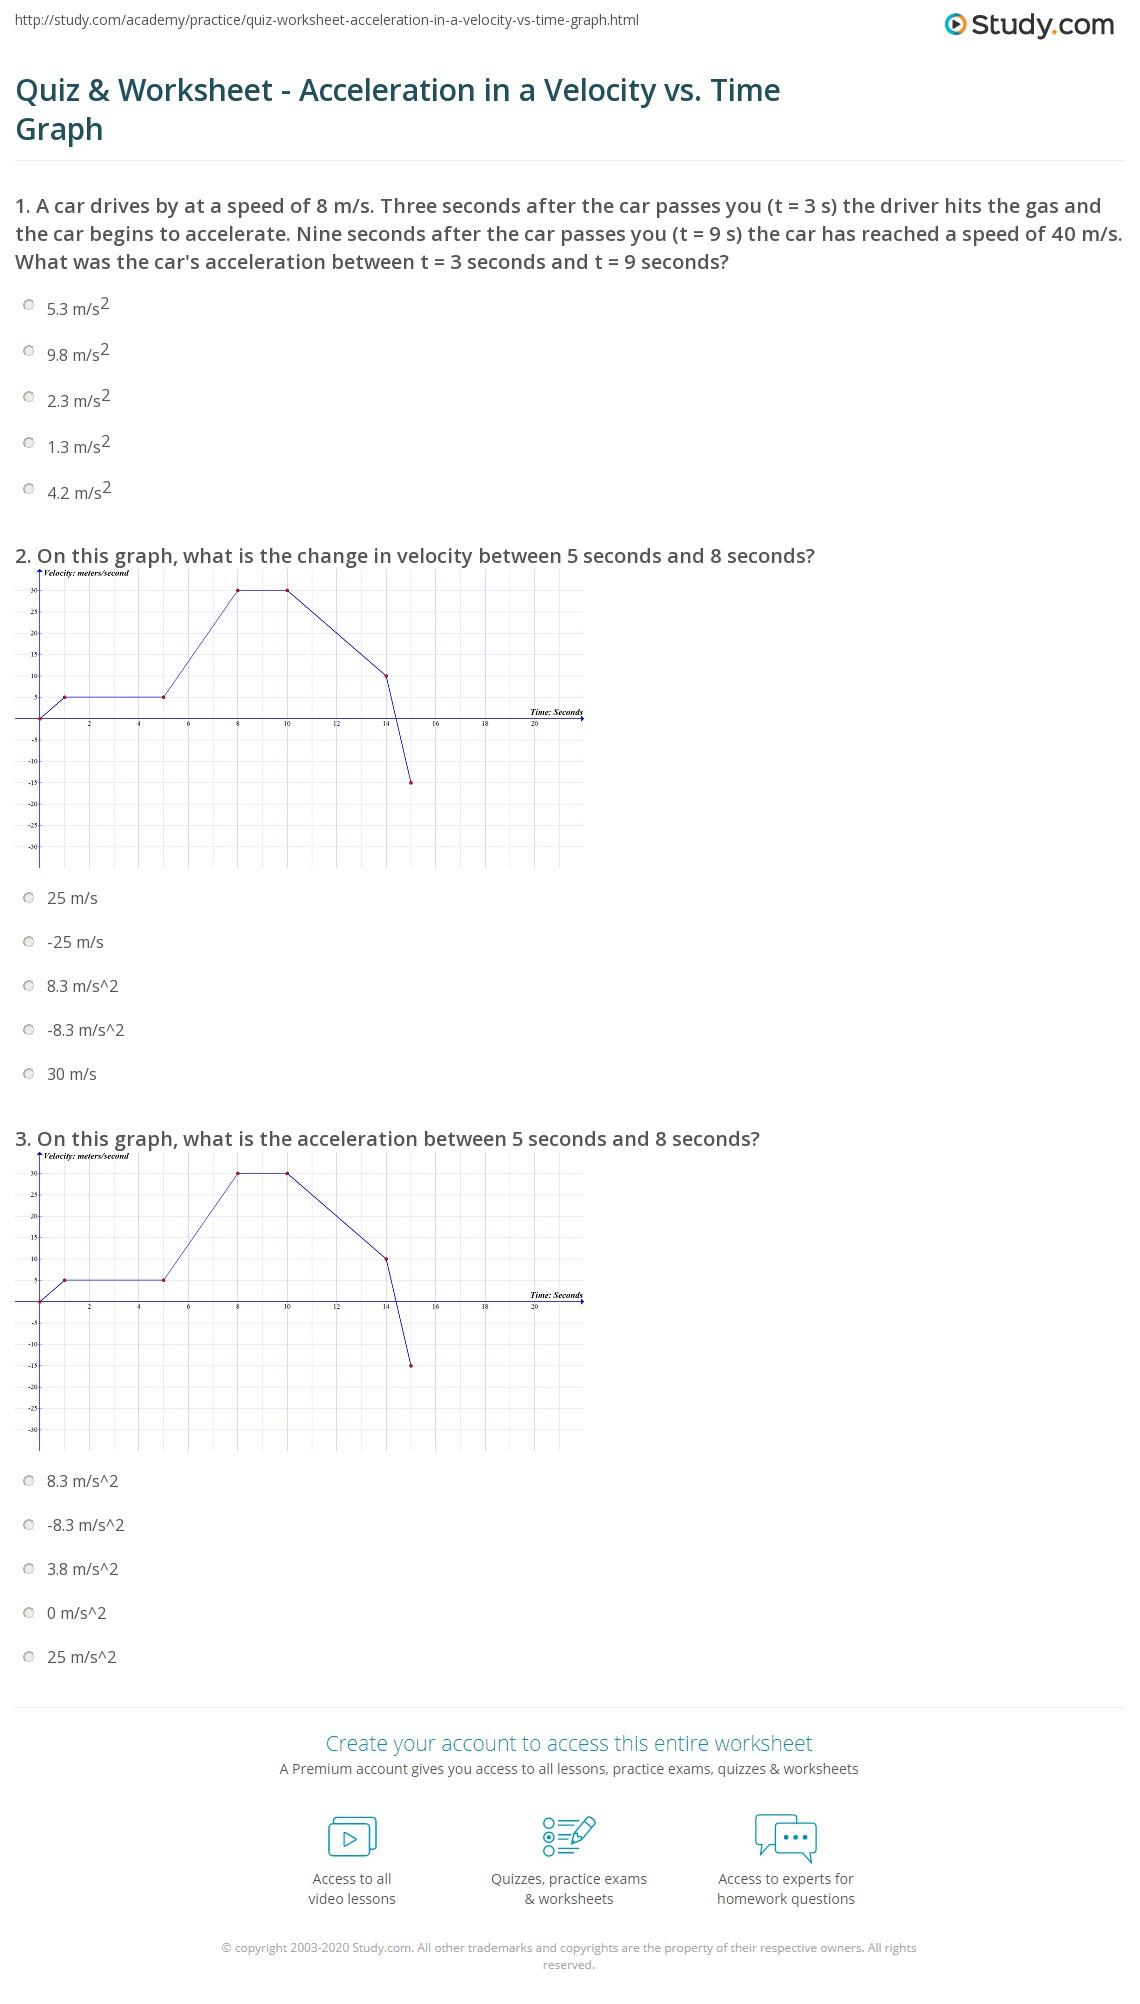 Acceleration Vs Time Graph Worksheet